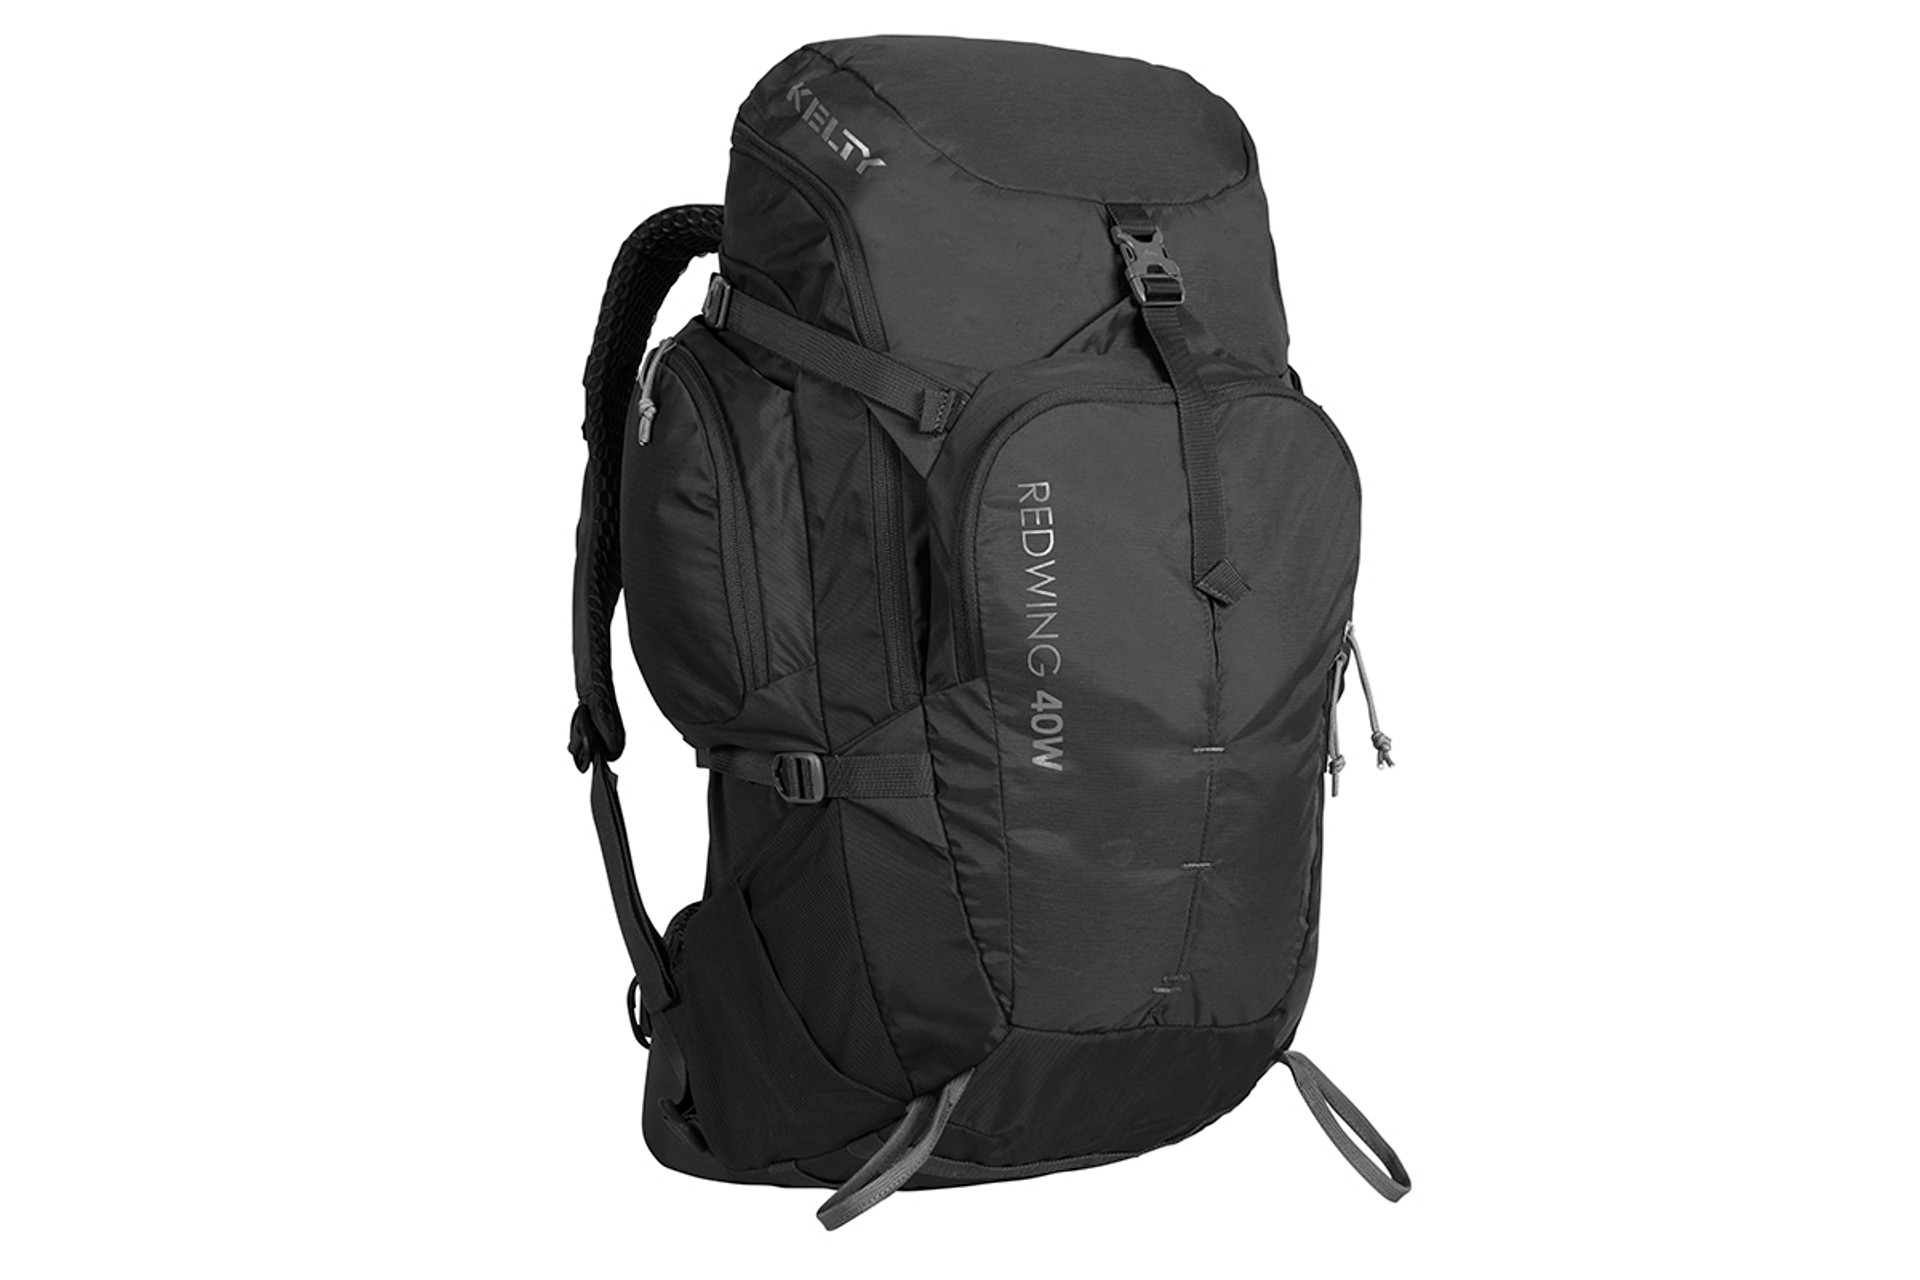 Redwing 40 The Hiking Backpack For Women Kelty